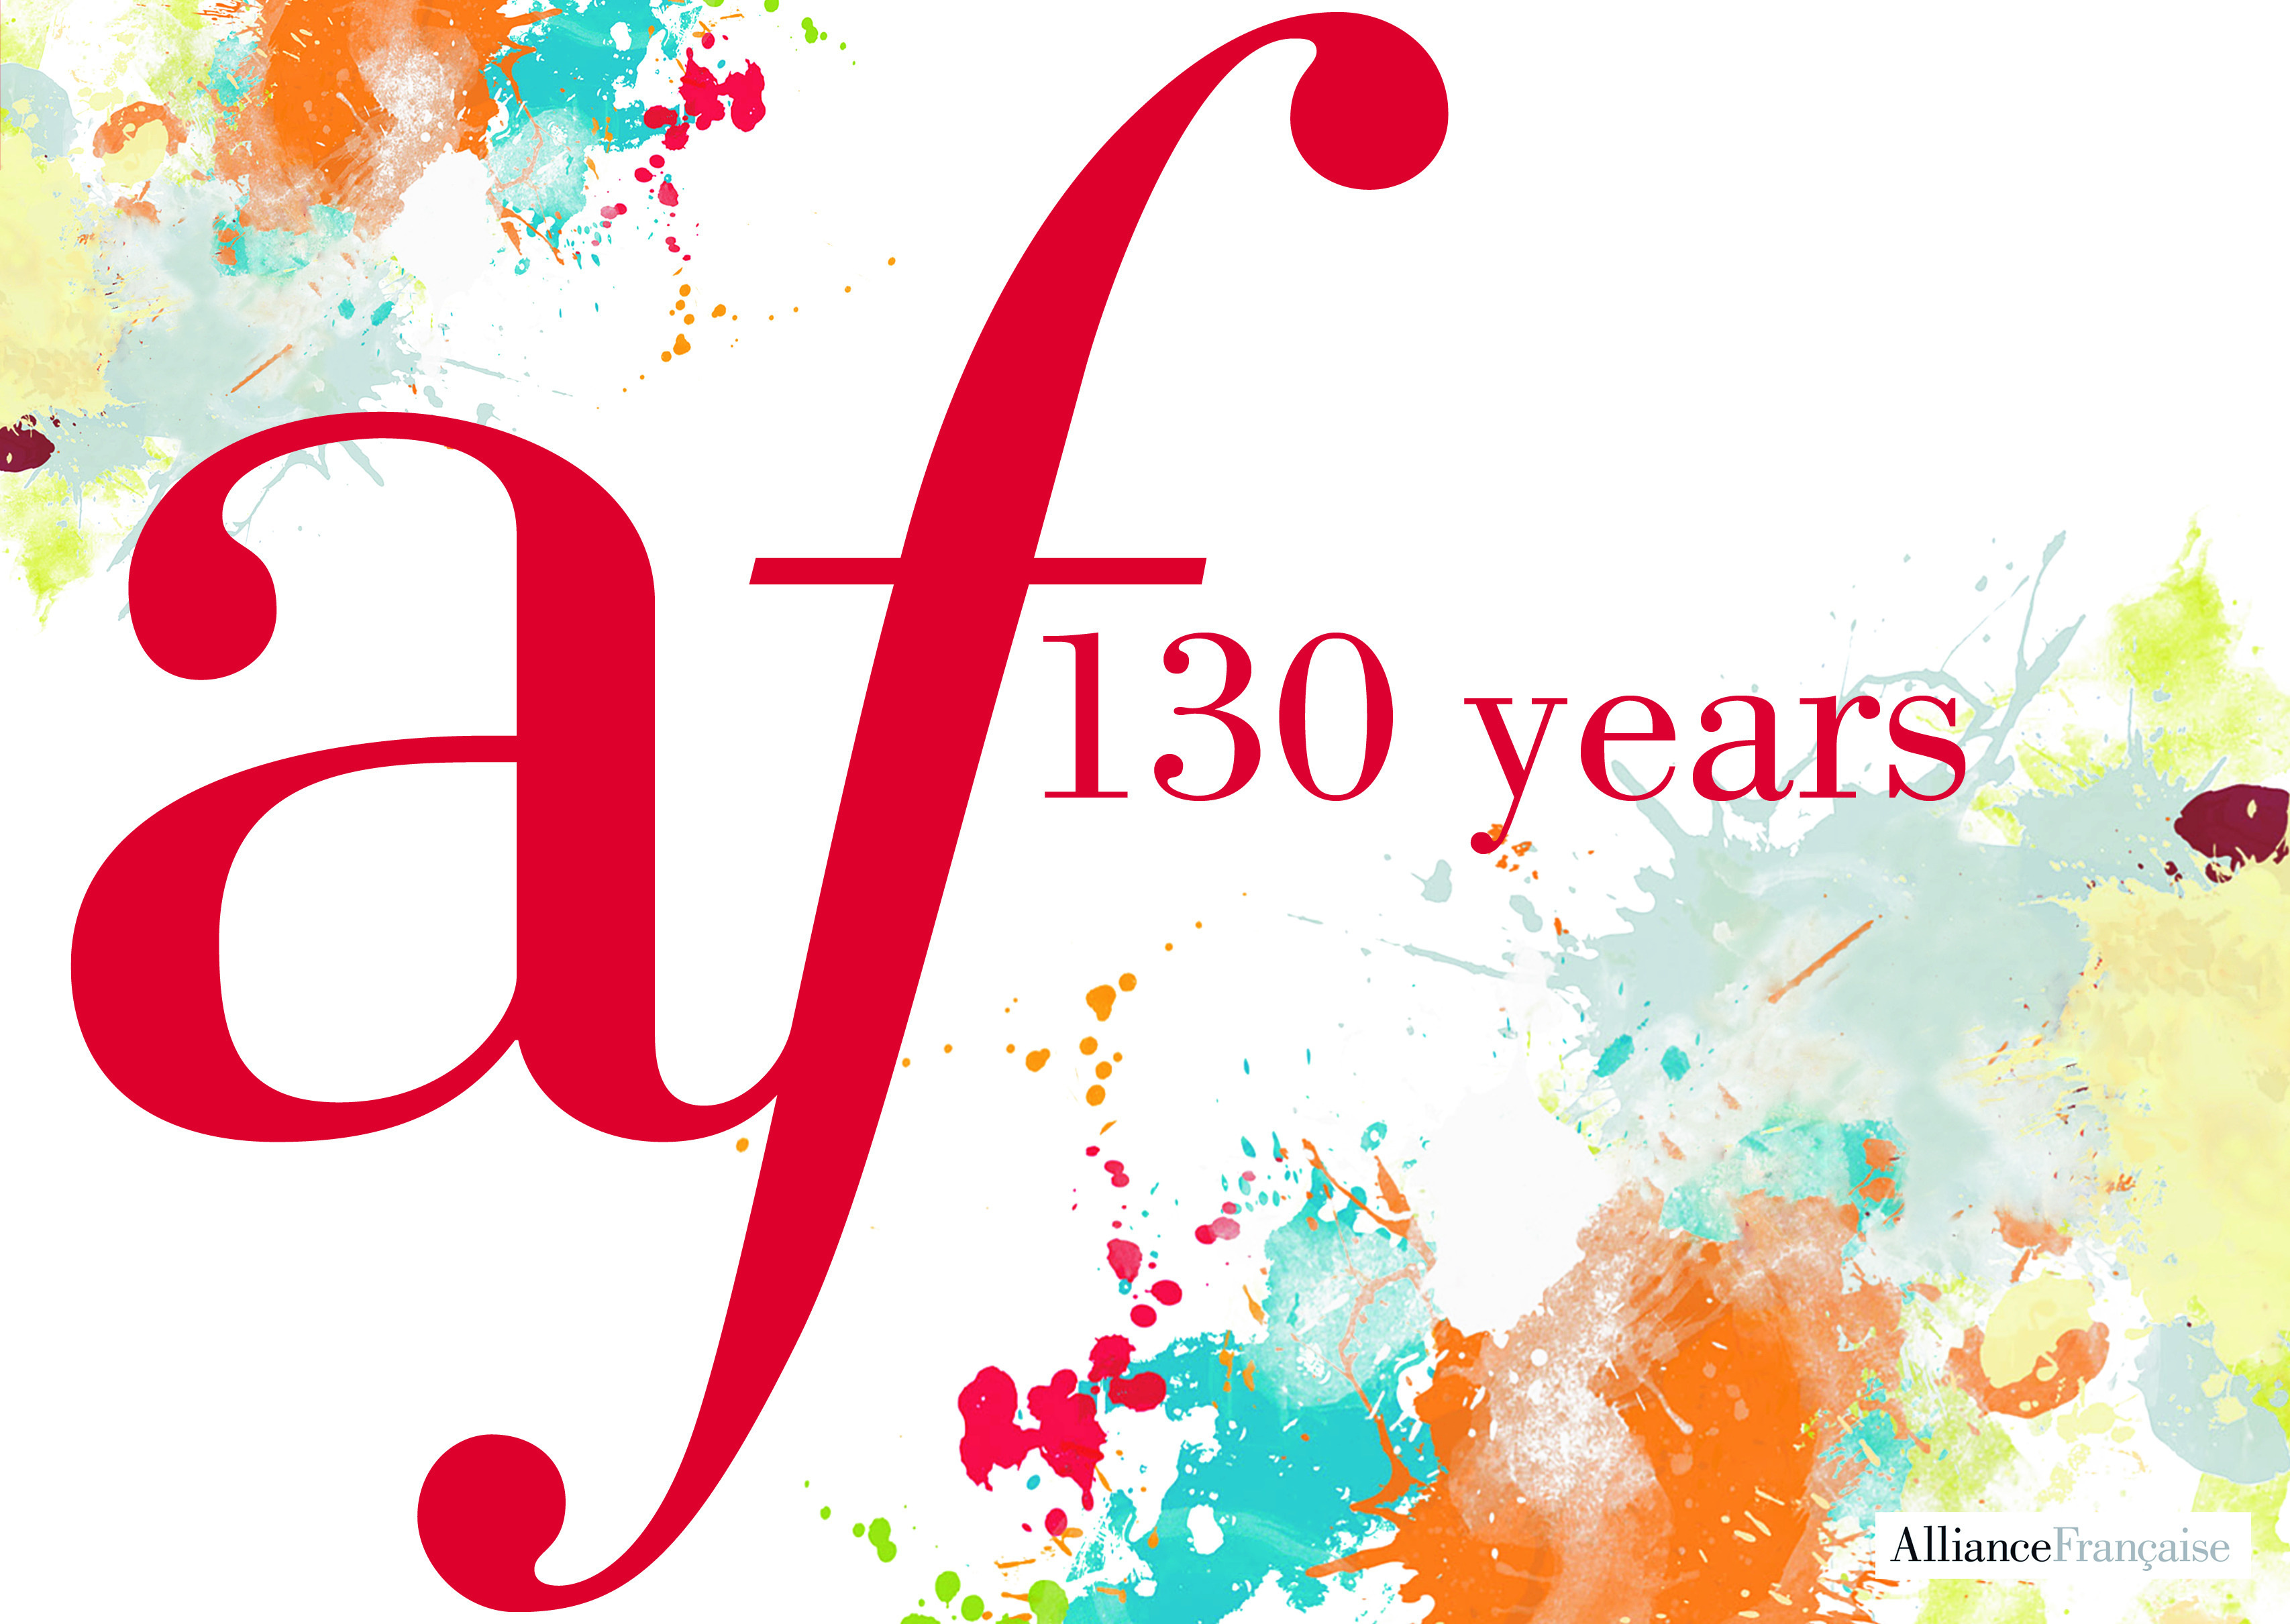 Collectif Alliance Française 130 years